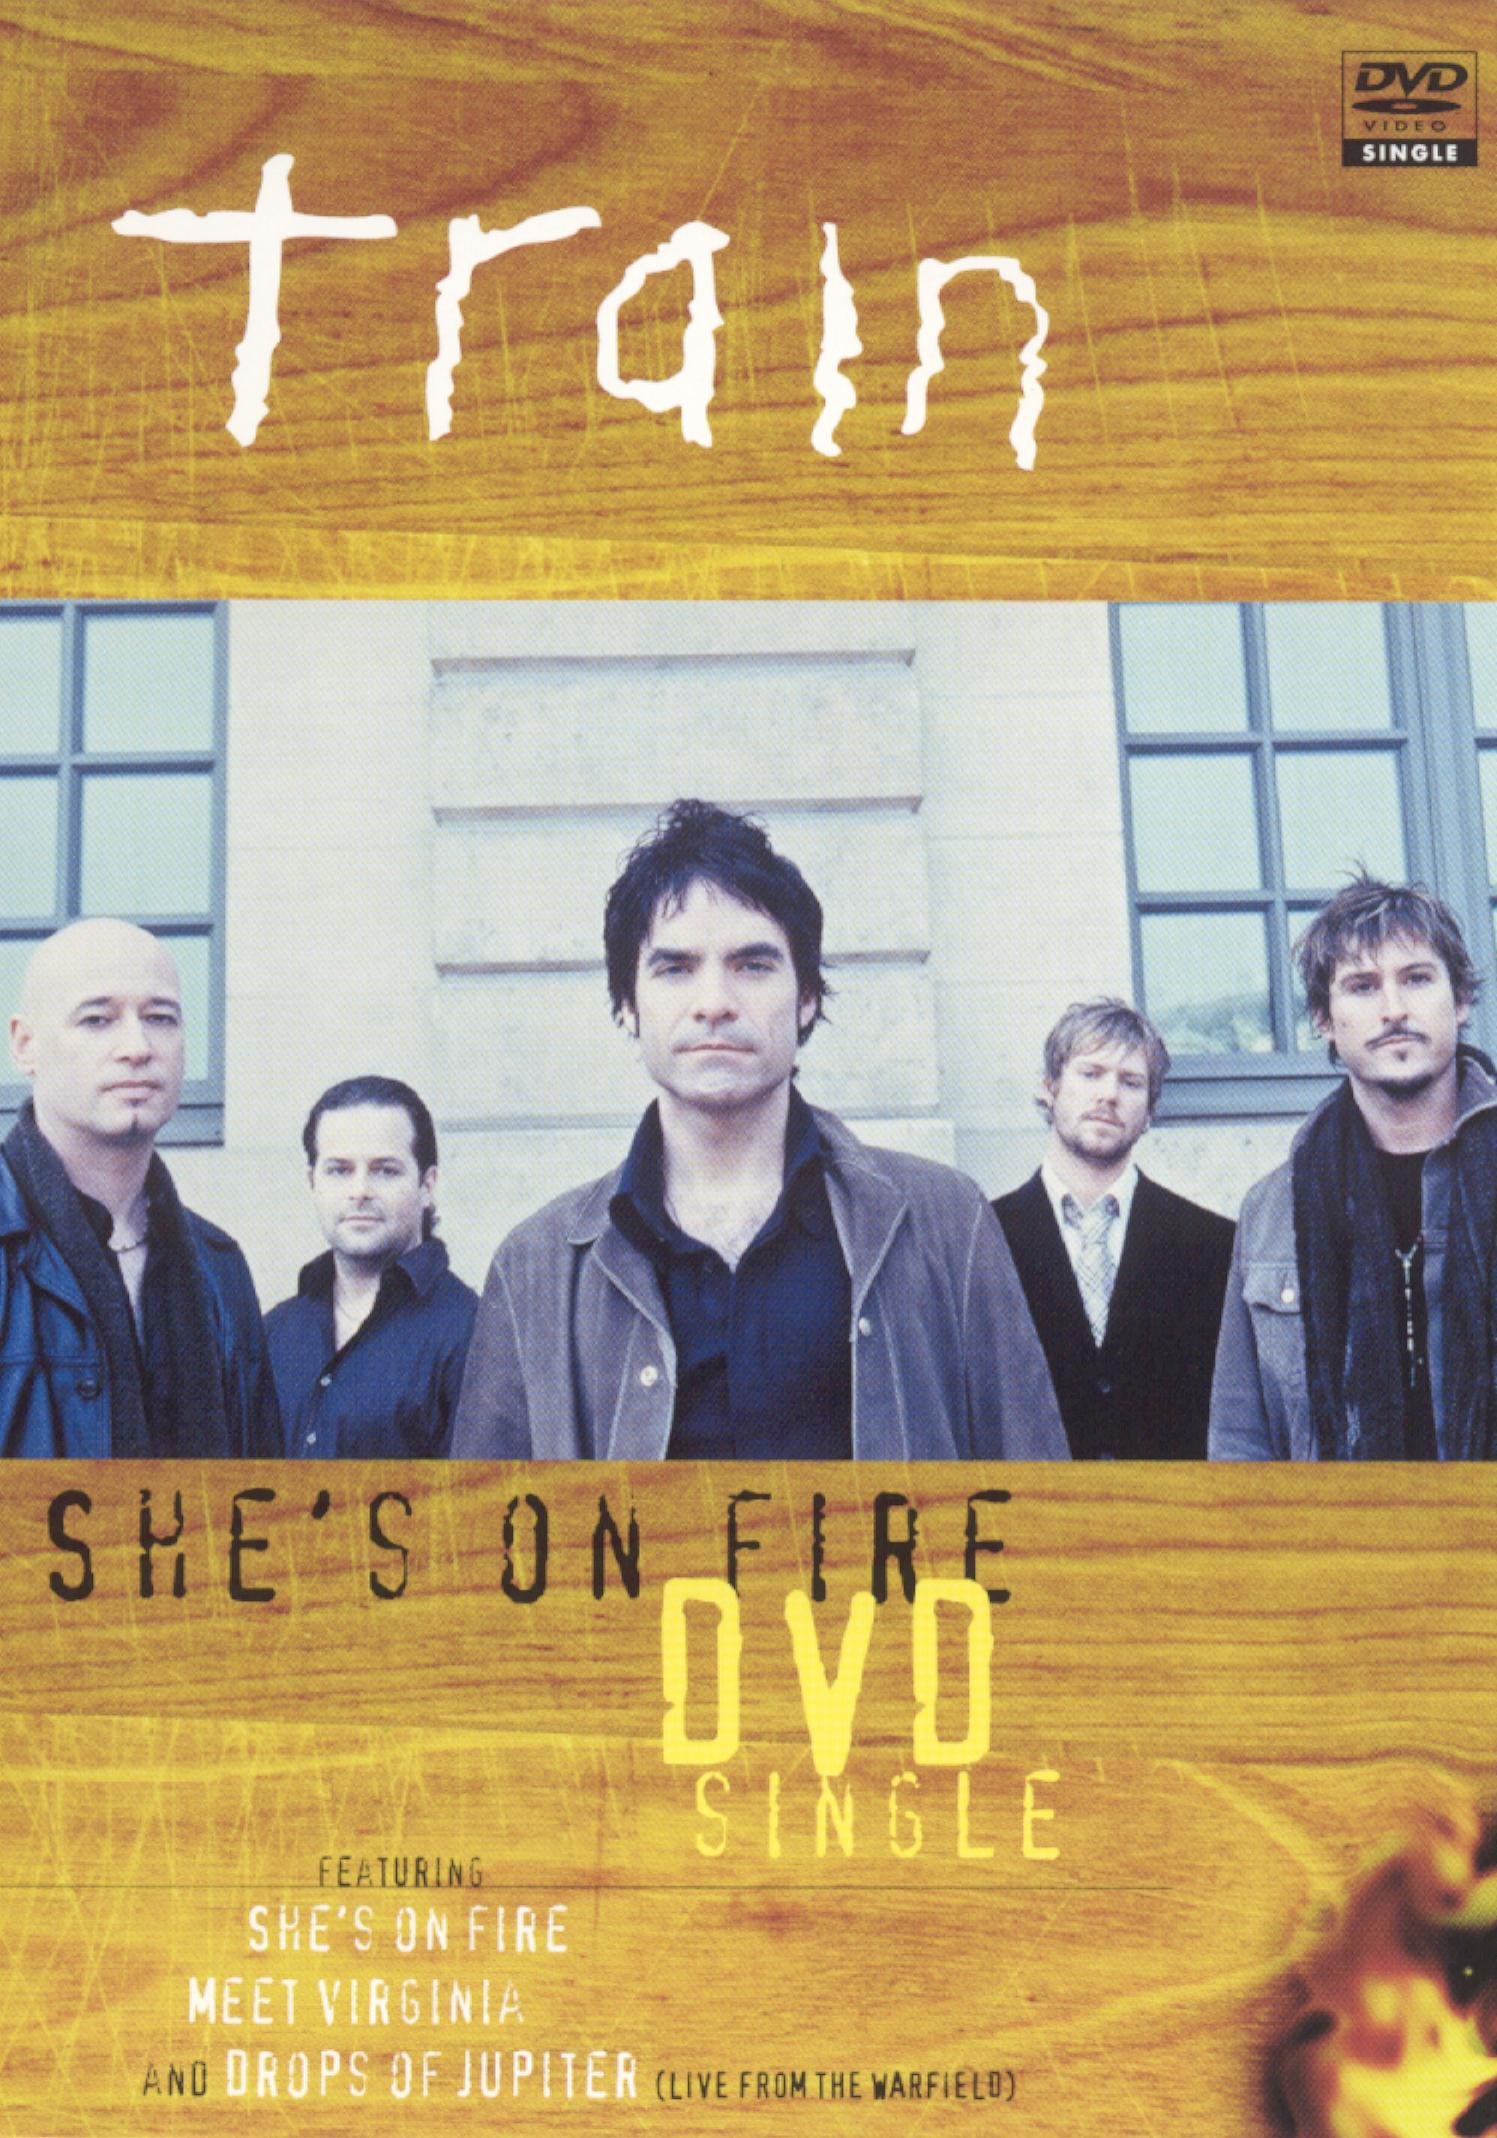 Train: She's On Fire  [DVD Single]